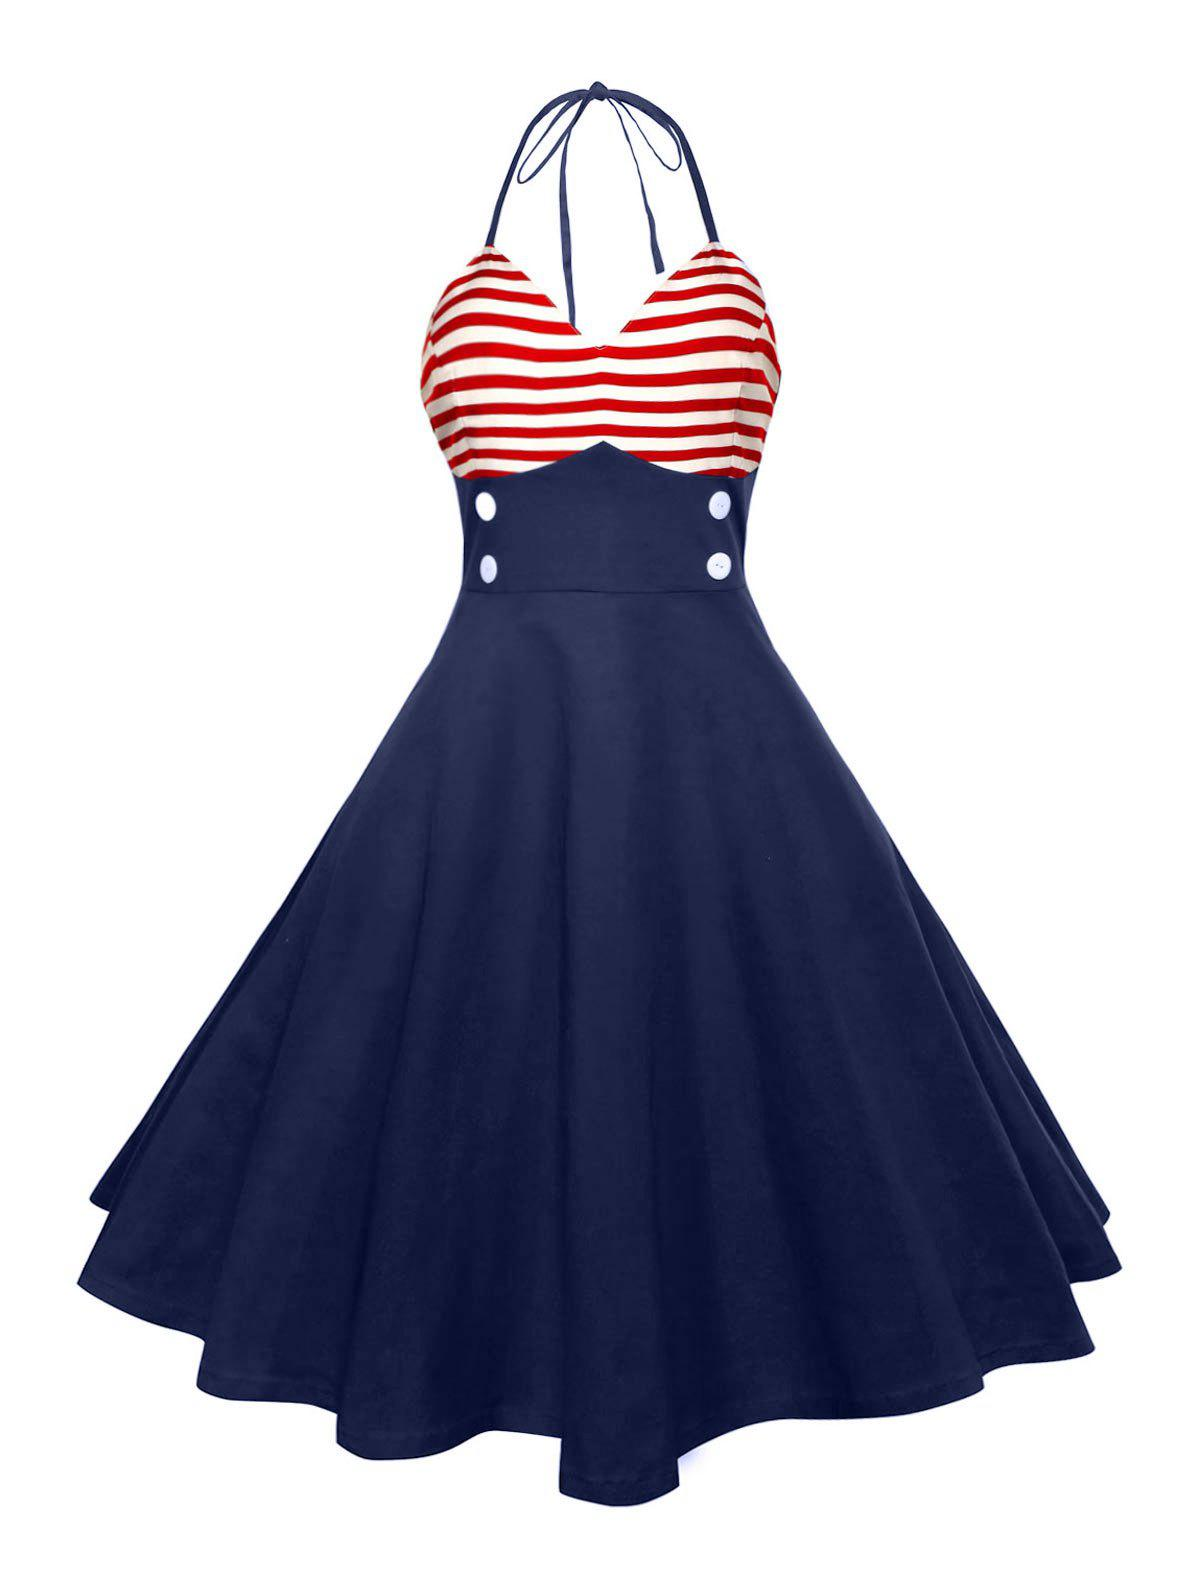 Halter American Flag Vintage DressWOMEN<br><br>Size: XL; Color: RED; Style: Vintage; Material: Polyester; Silhouette: A-Line; Dresses Length: Knee-Length; Neckline: Halter; Sleeve Length: Sleeveless; Pattern Type: Striped; With Belt: No; Season: Summer; Weight: 0.4500kg; Package Contents: 1 x Dress;